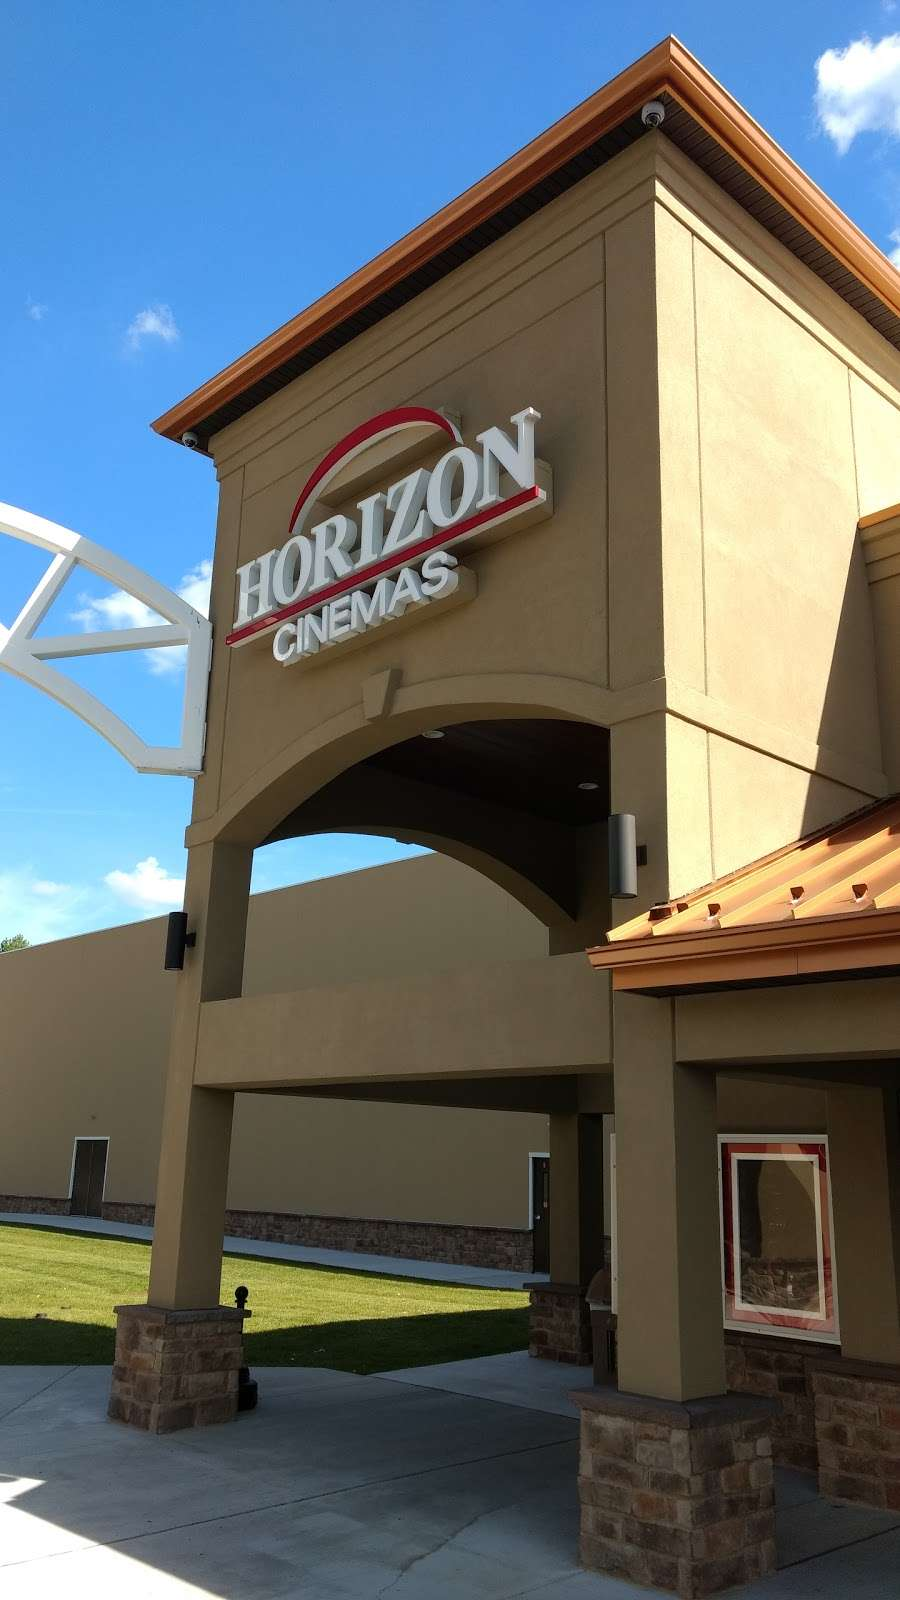 Horizon Cinemas Fallston - movie theater  | Photo 10 of 10 | Address: 2315 Belair Rd, Fallston, MD 21047, USA | Phone: (443) 981-3248